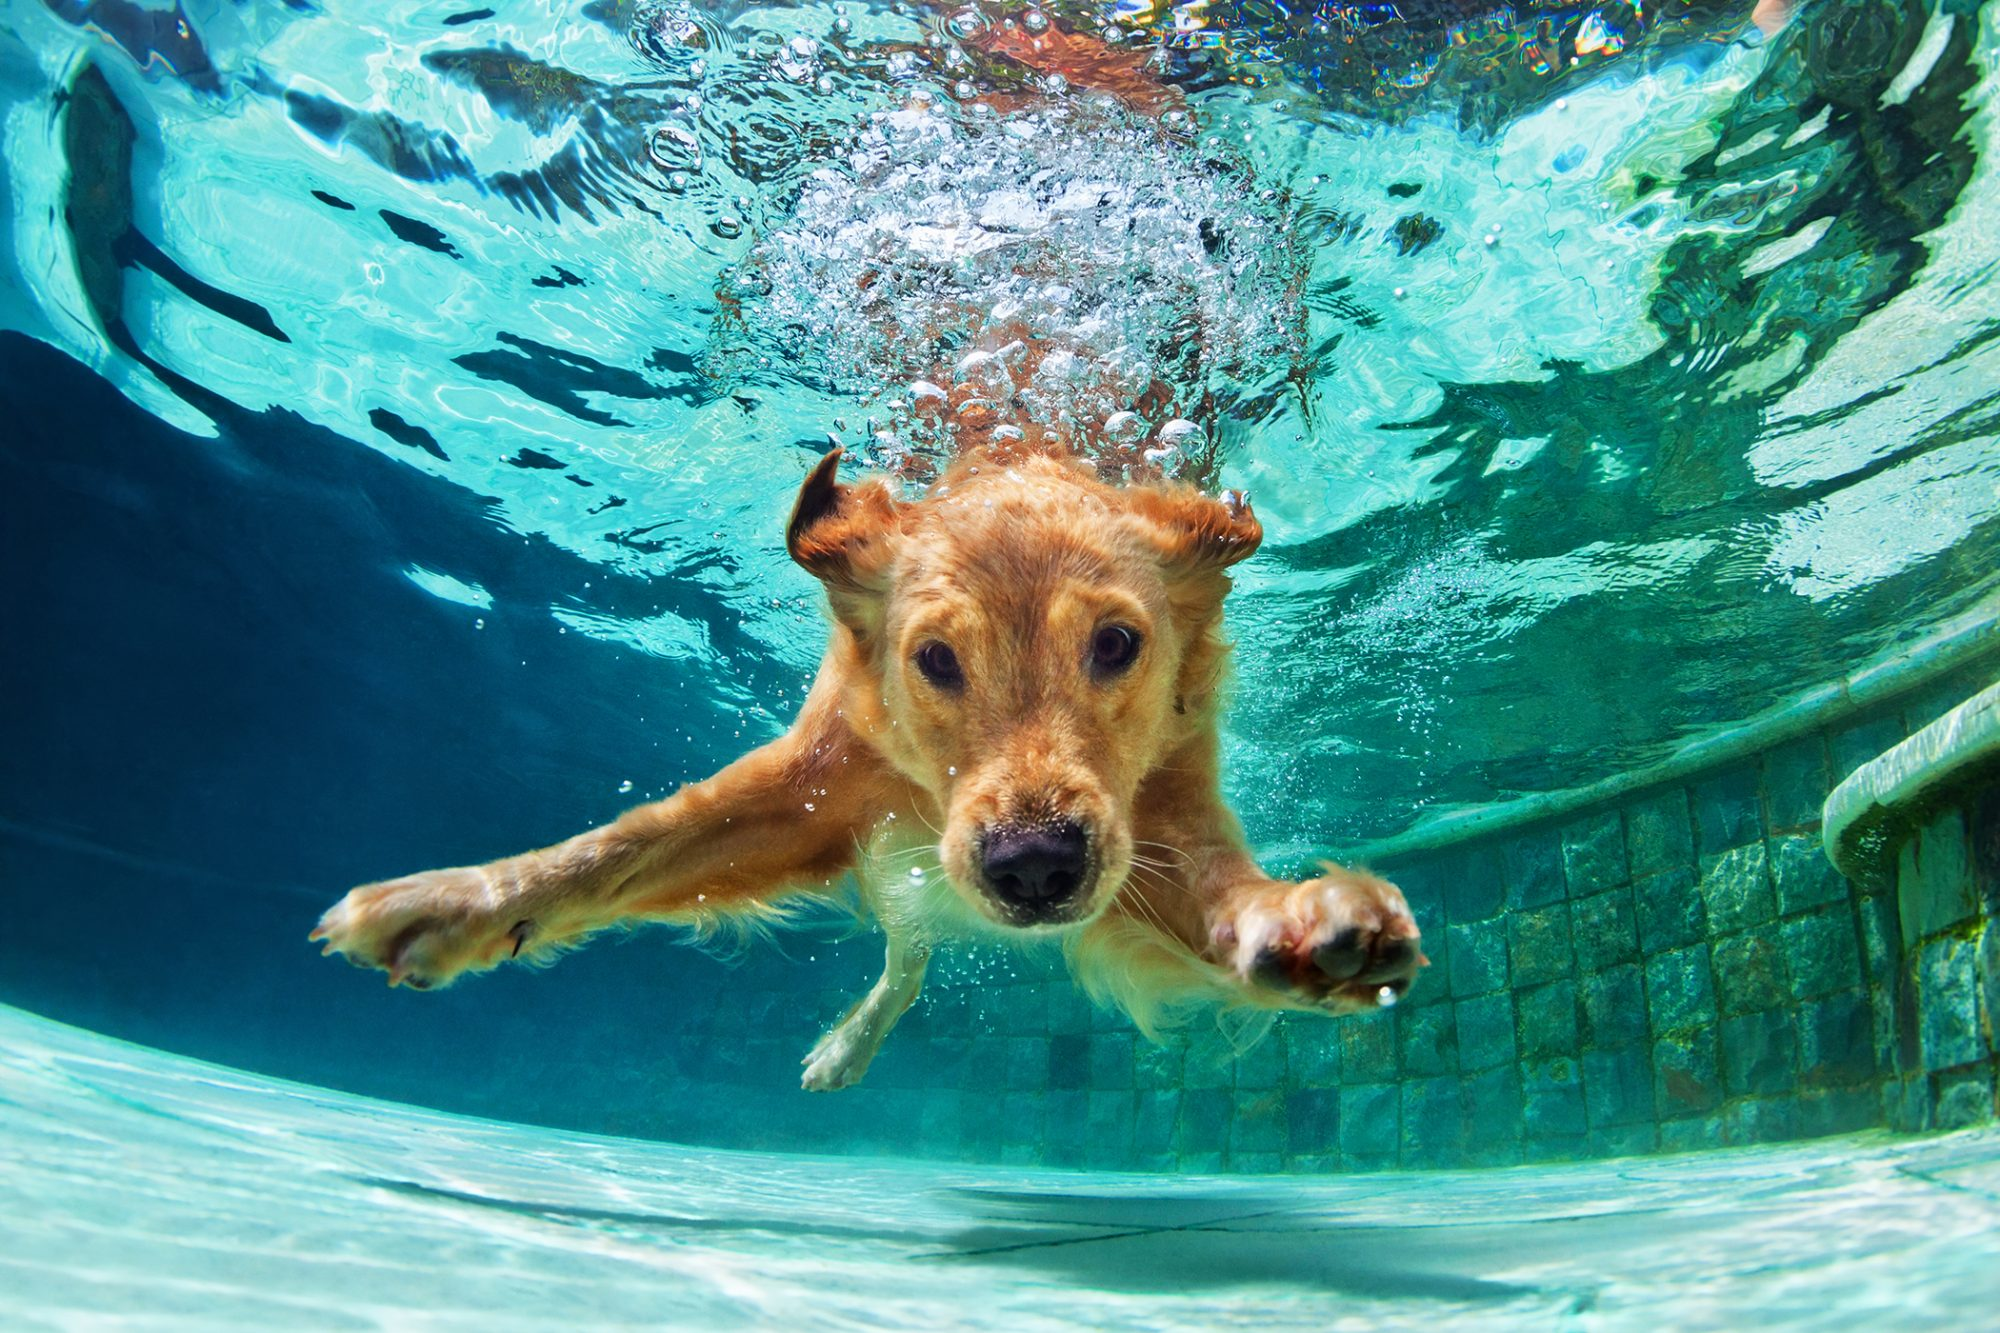 Blonde dog swims under water in pool